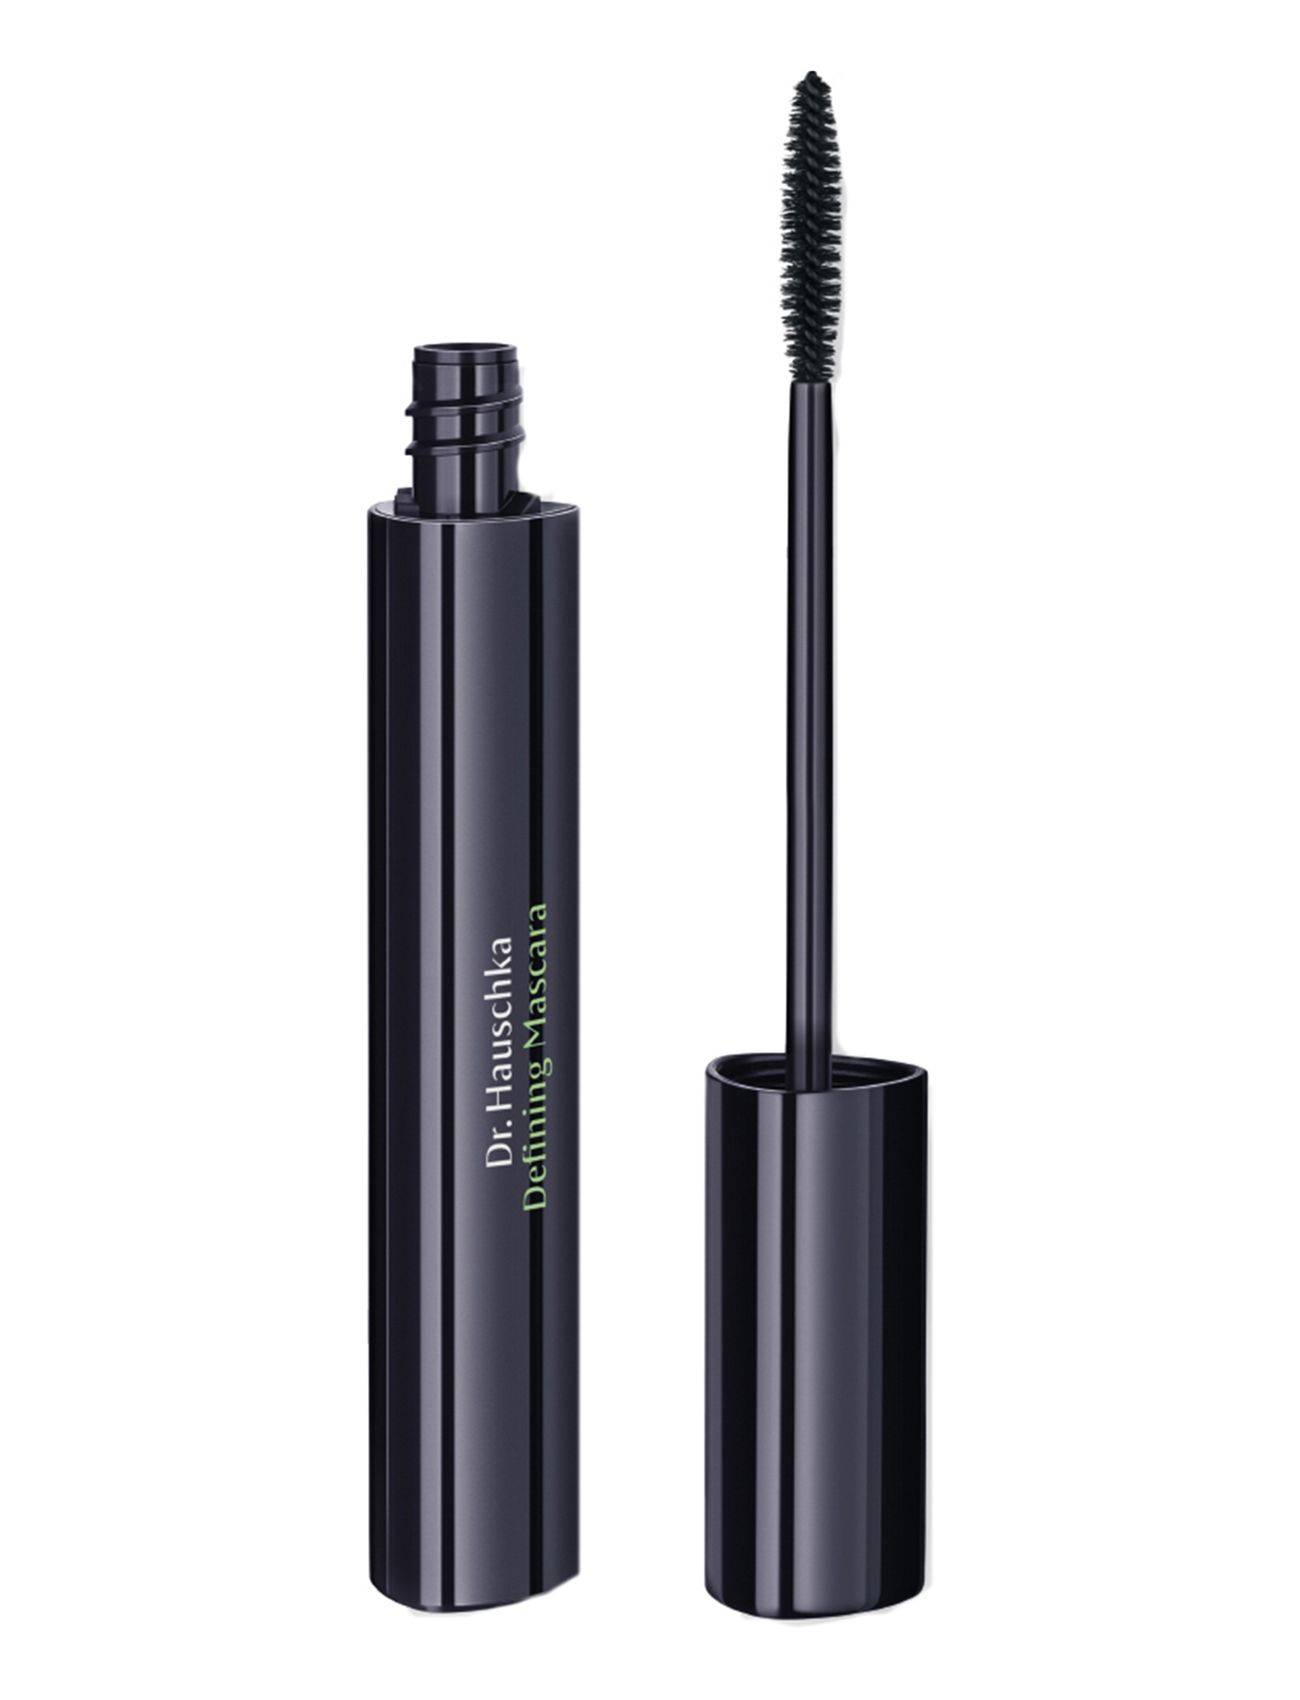 Dr. Hauschka Defining Mascara 01 Black